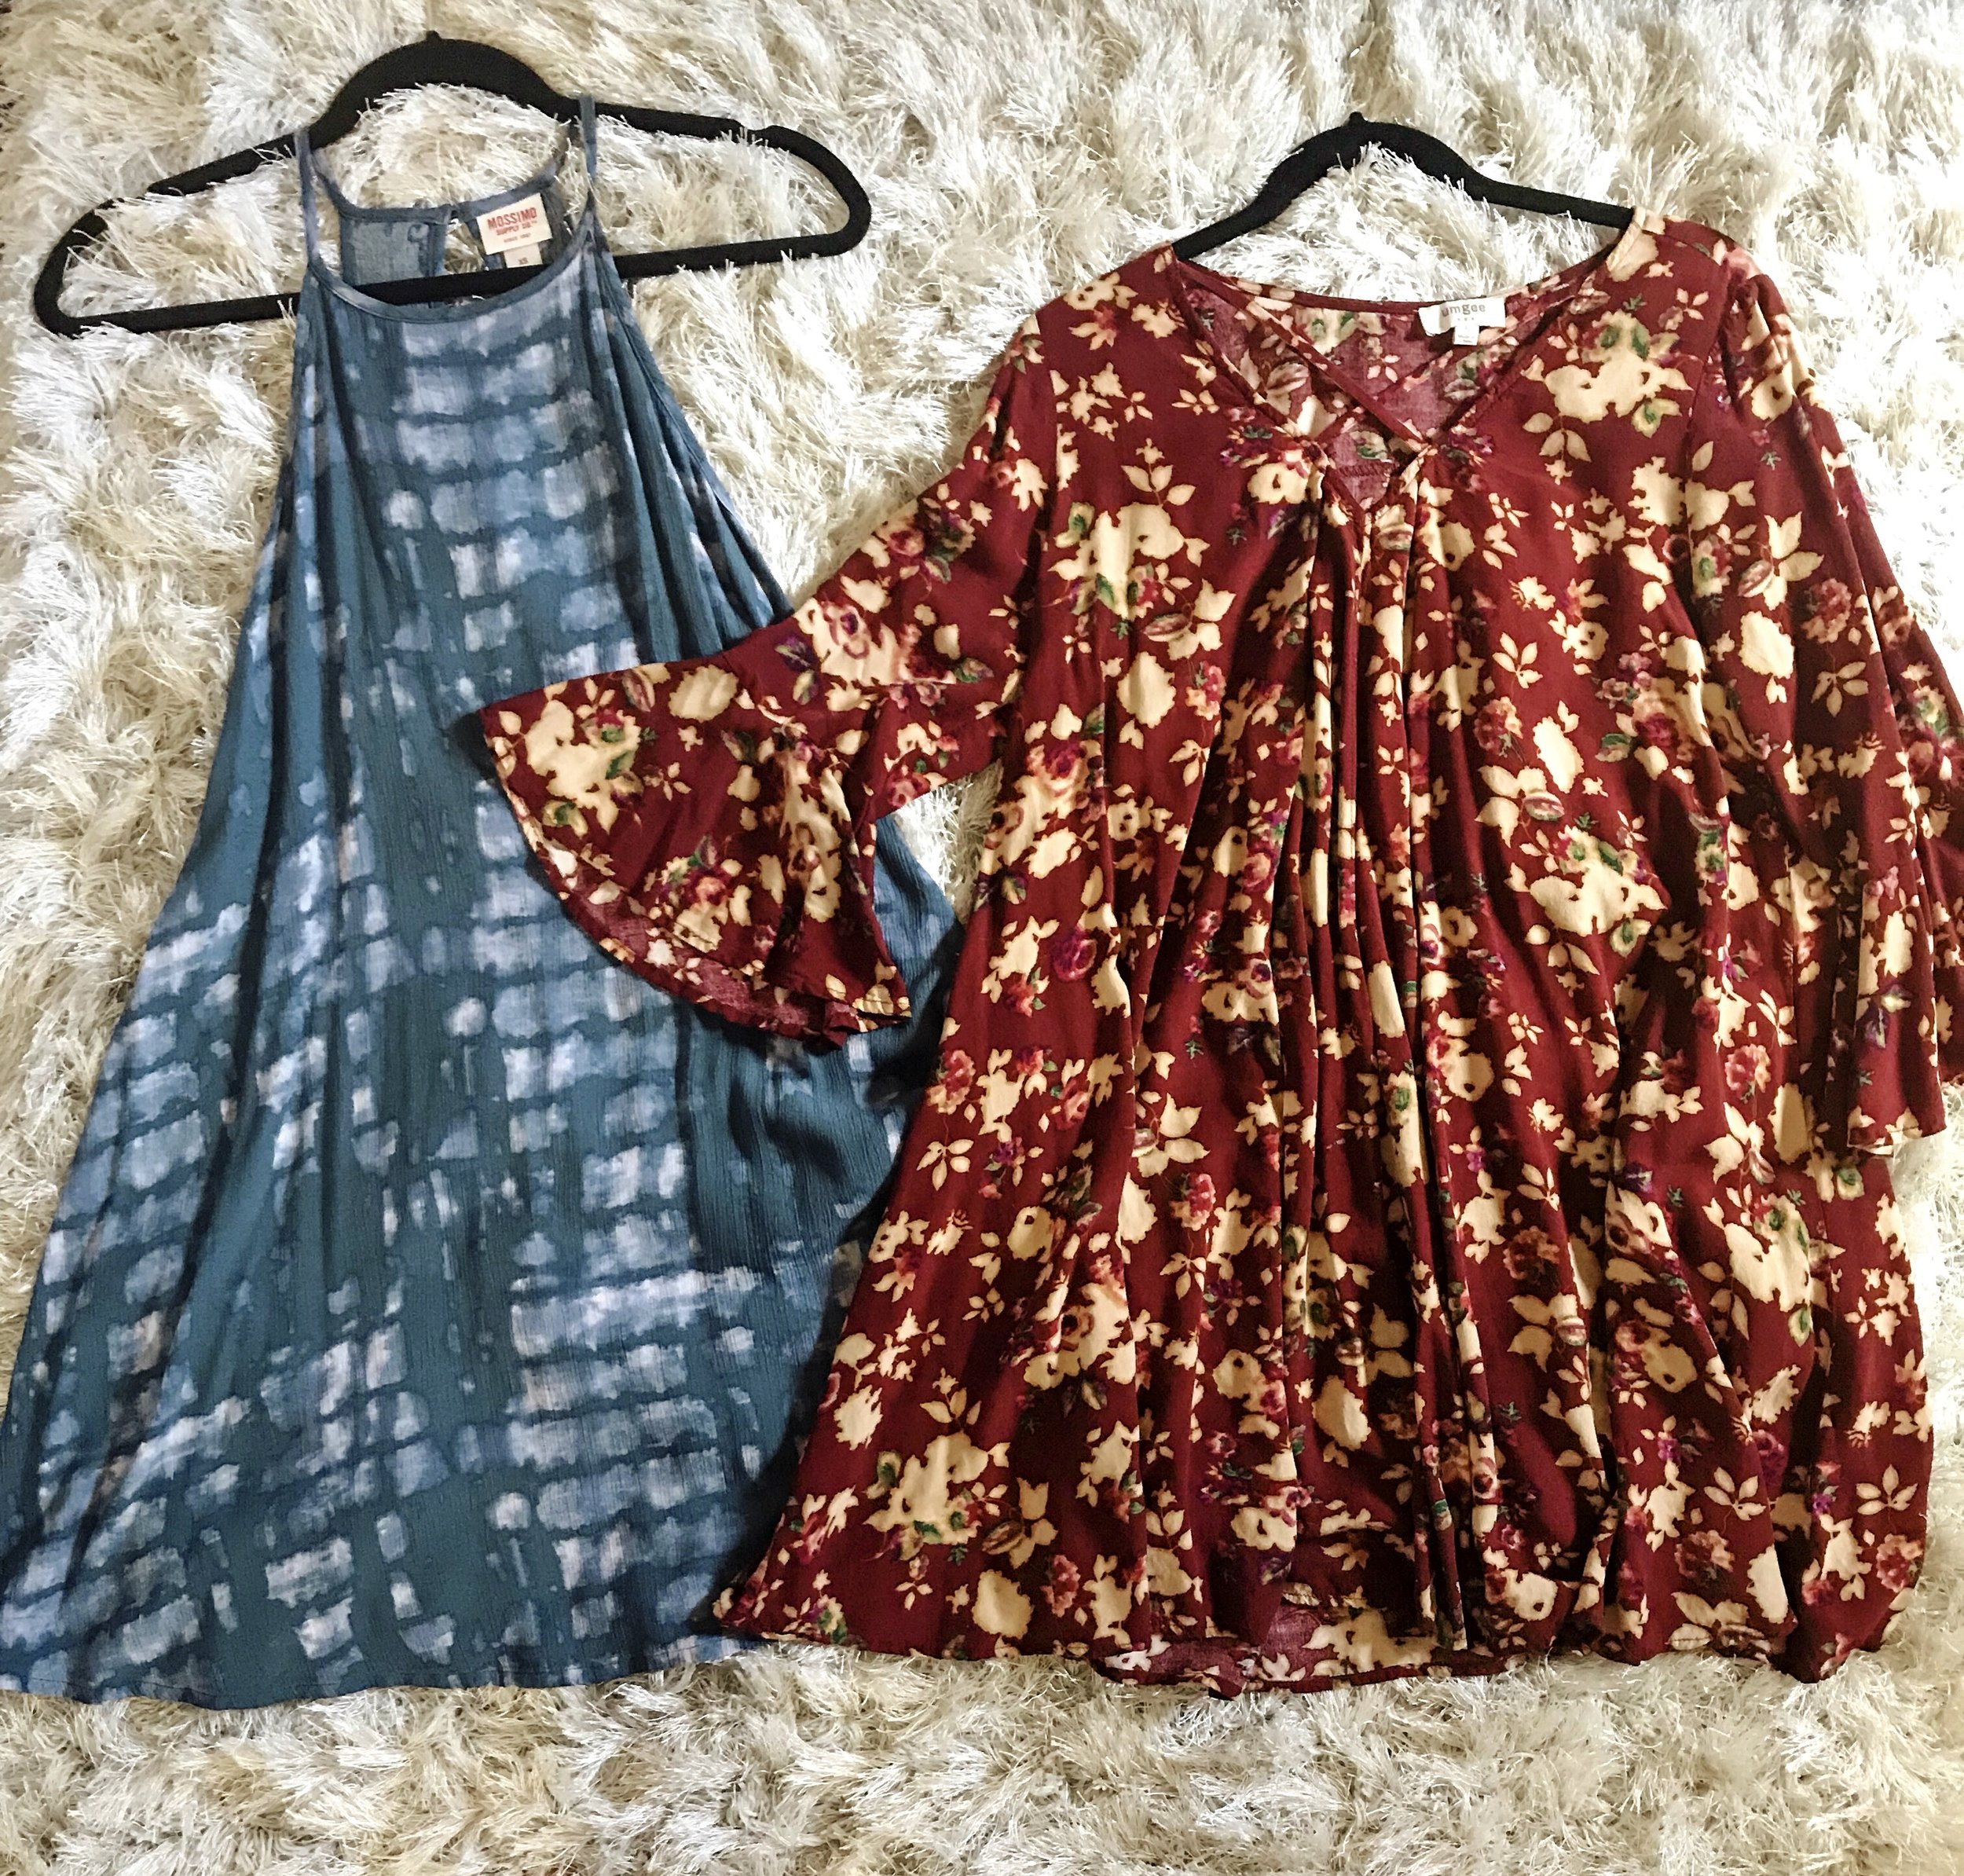 mini tie-dye dress and floral dress